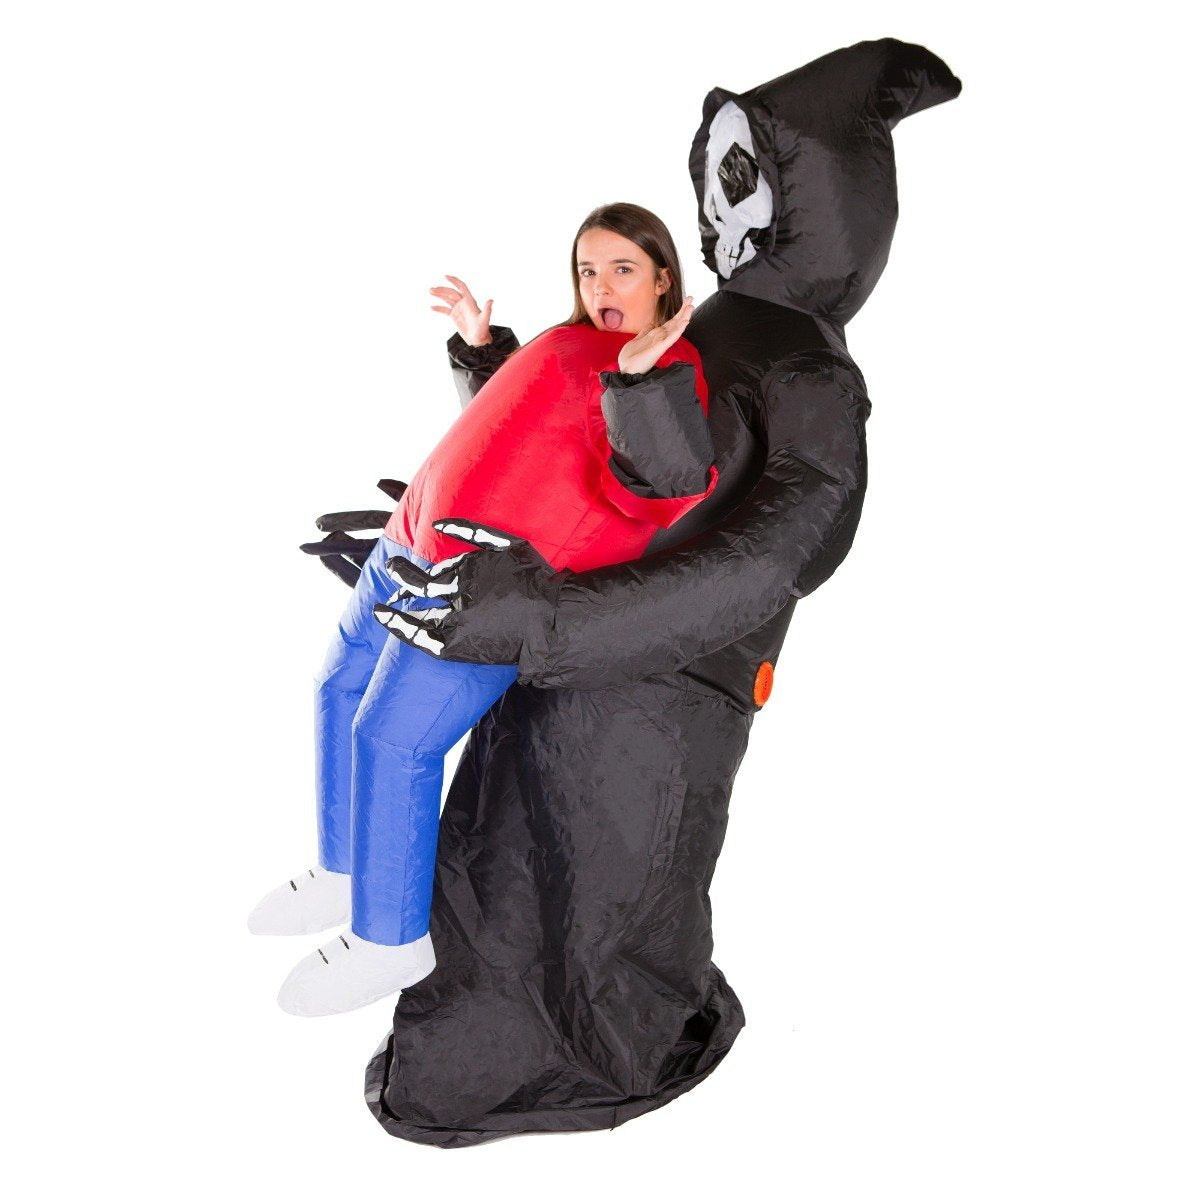 Bodysocks - Inflatable Lift You Up Grim Reaper Costume